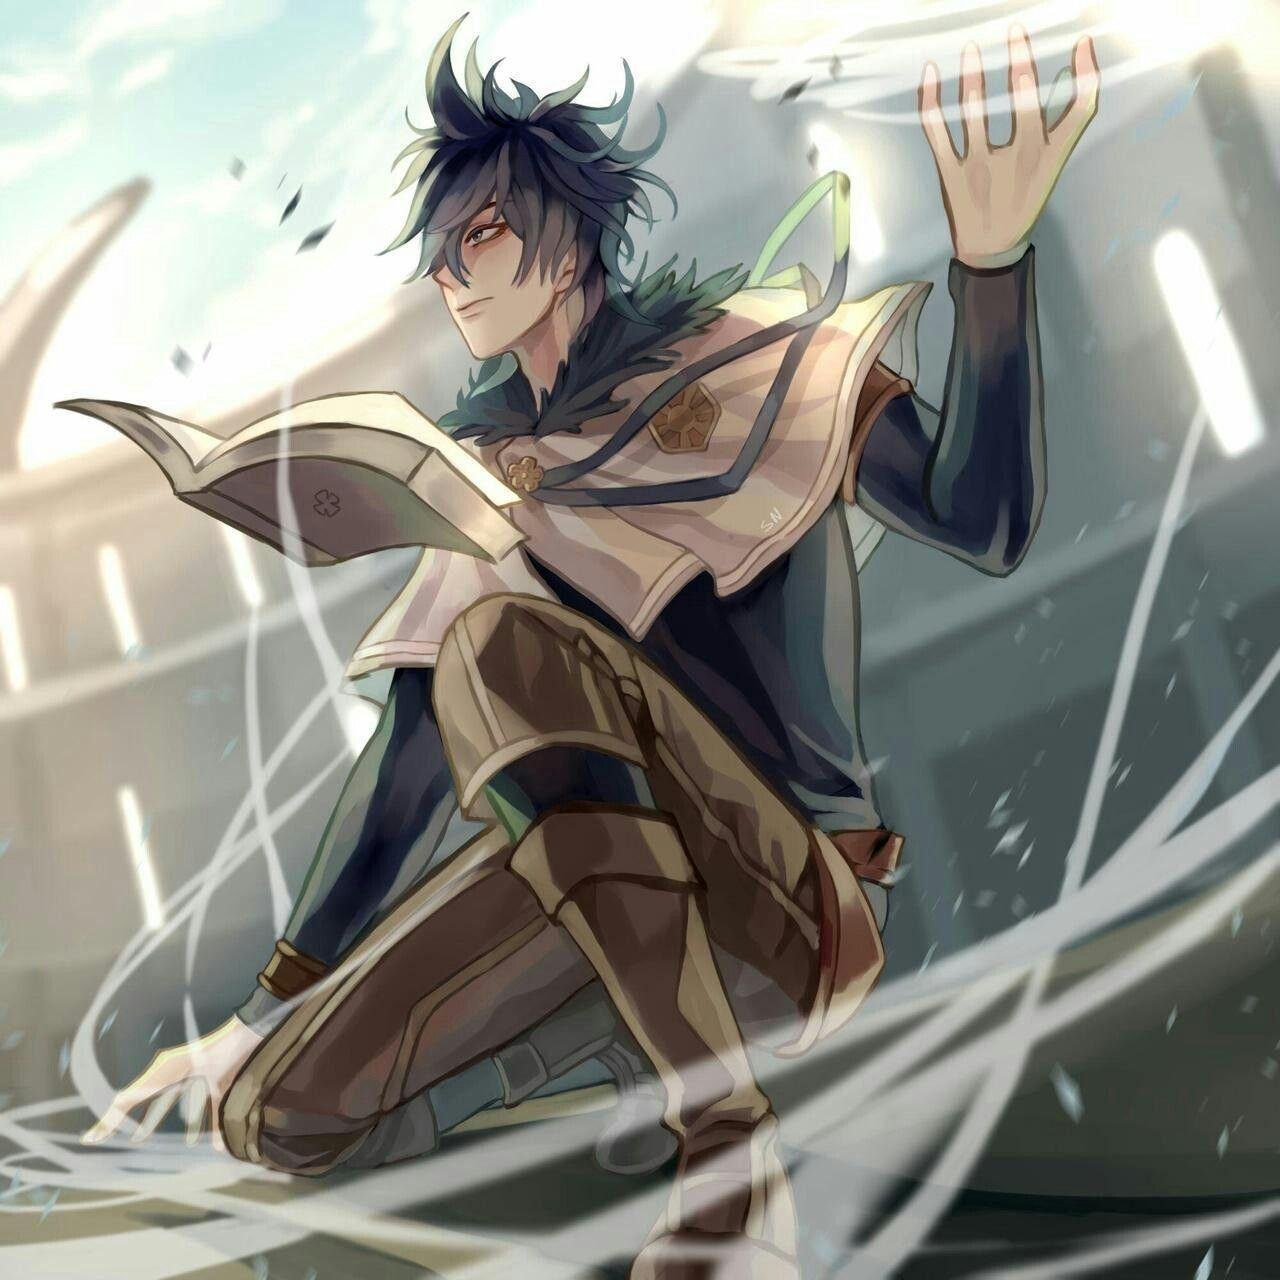 Yuno Black Clover Wallpapers Wallpaper Cave